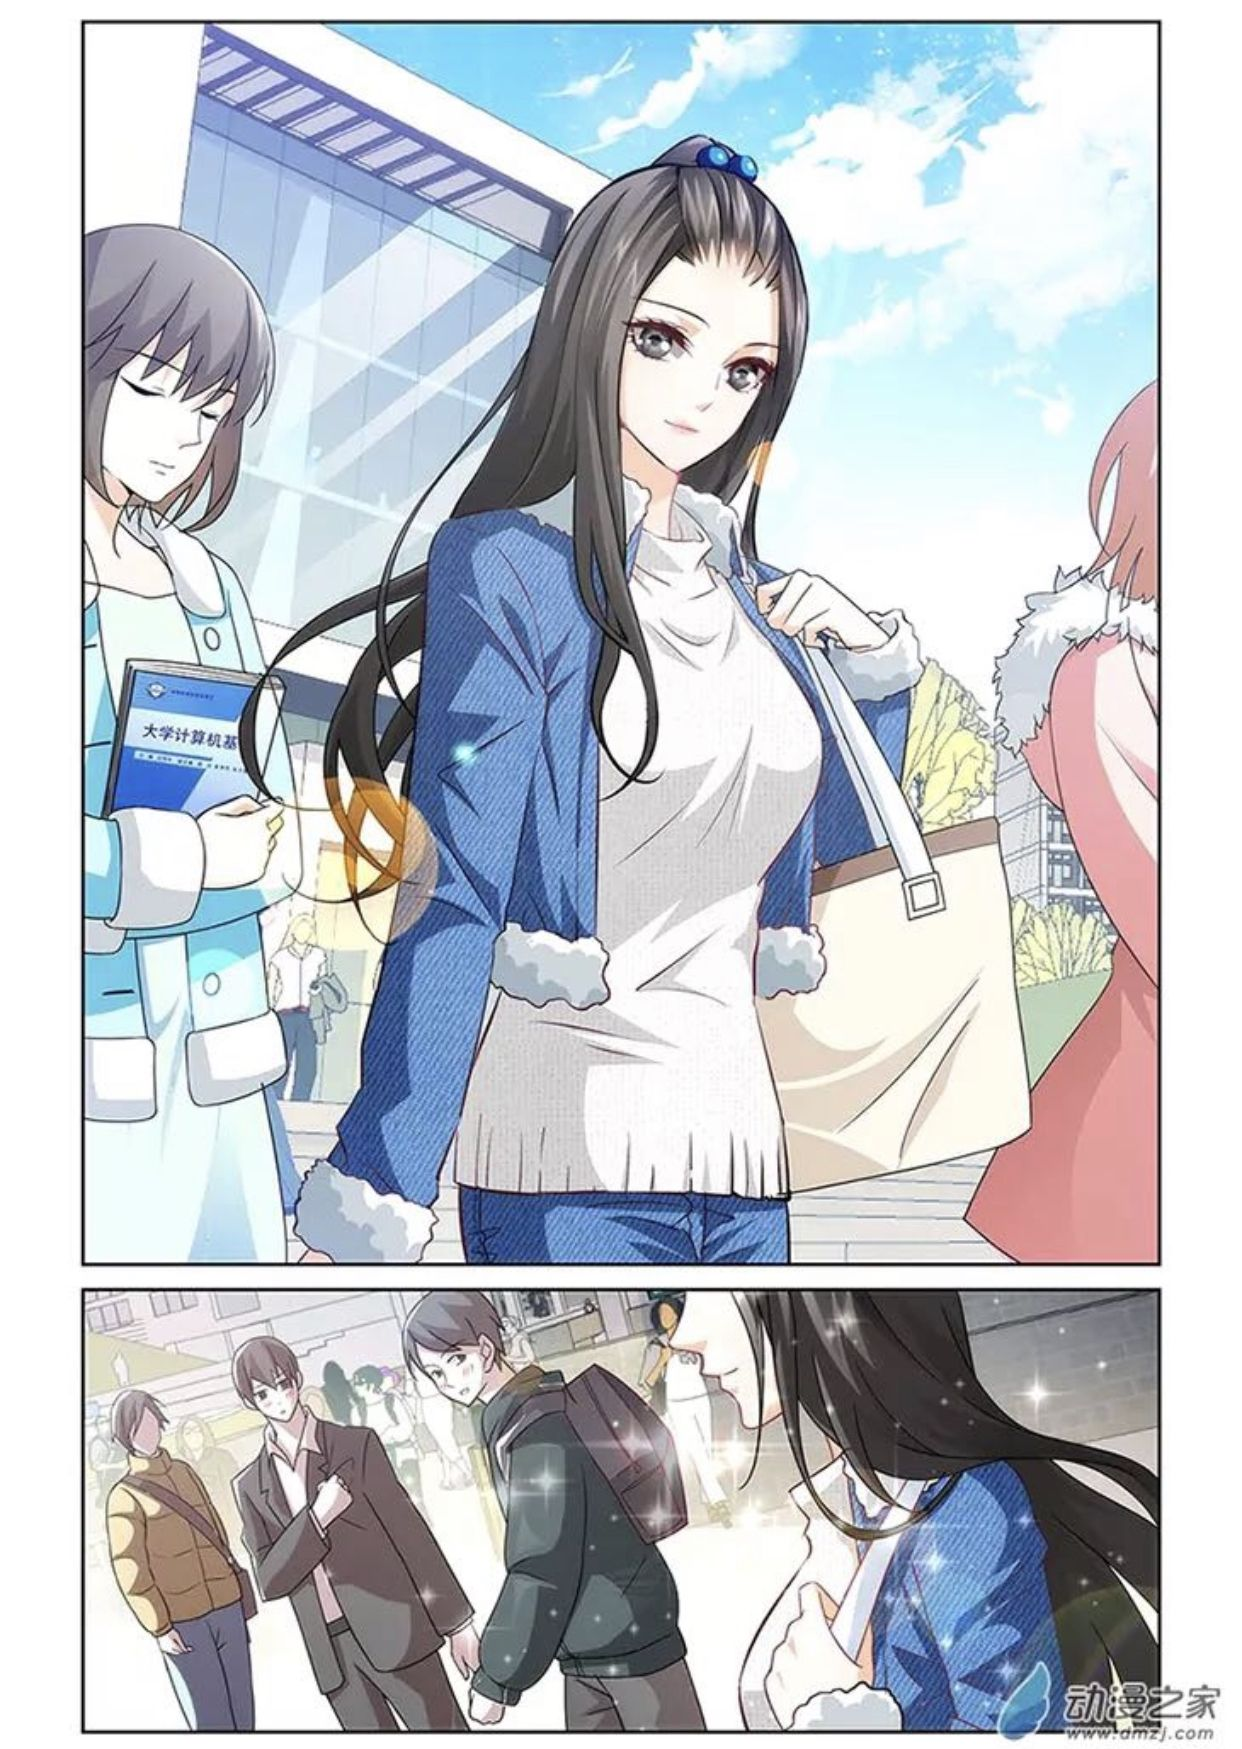 Pin by Animemangaluver on Love o2o aka Just One Smile is